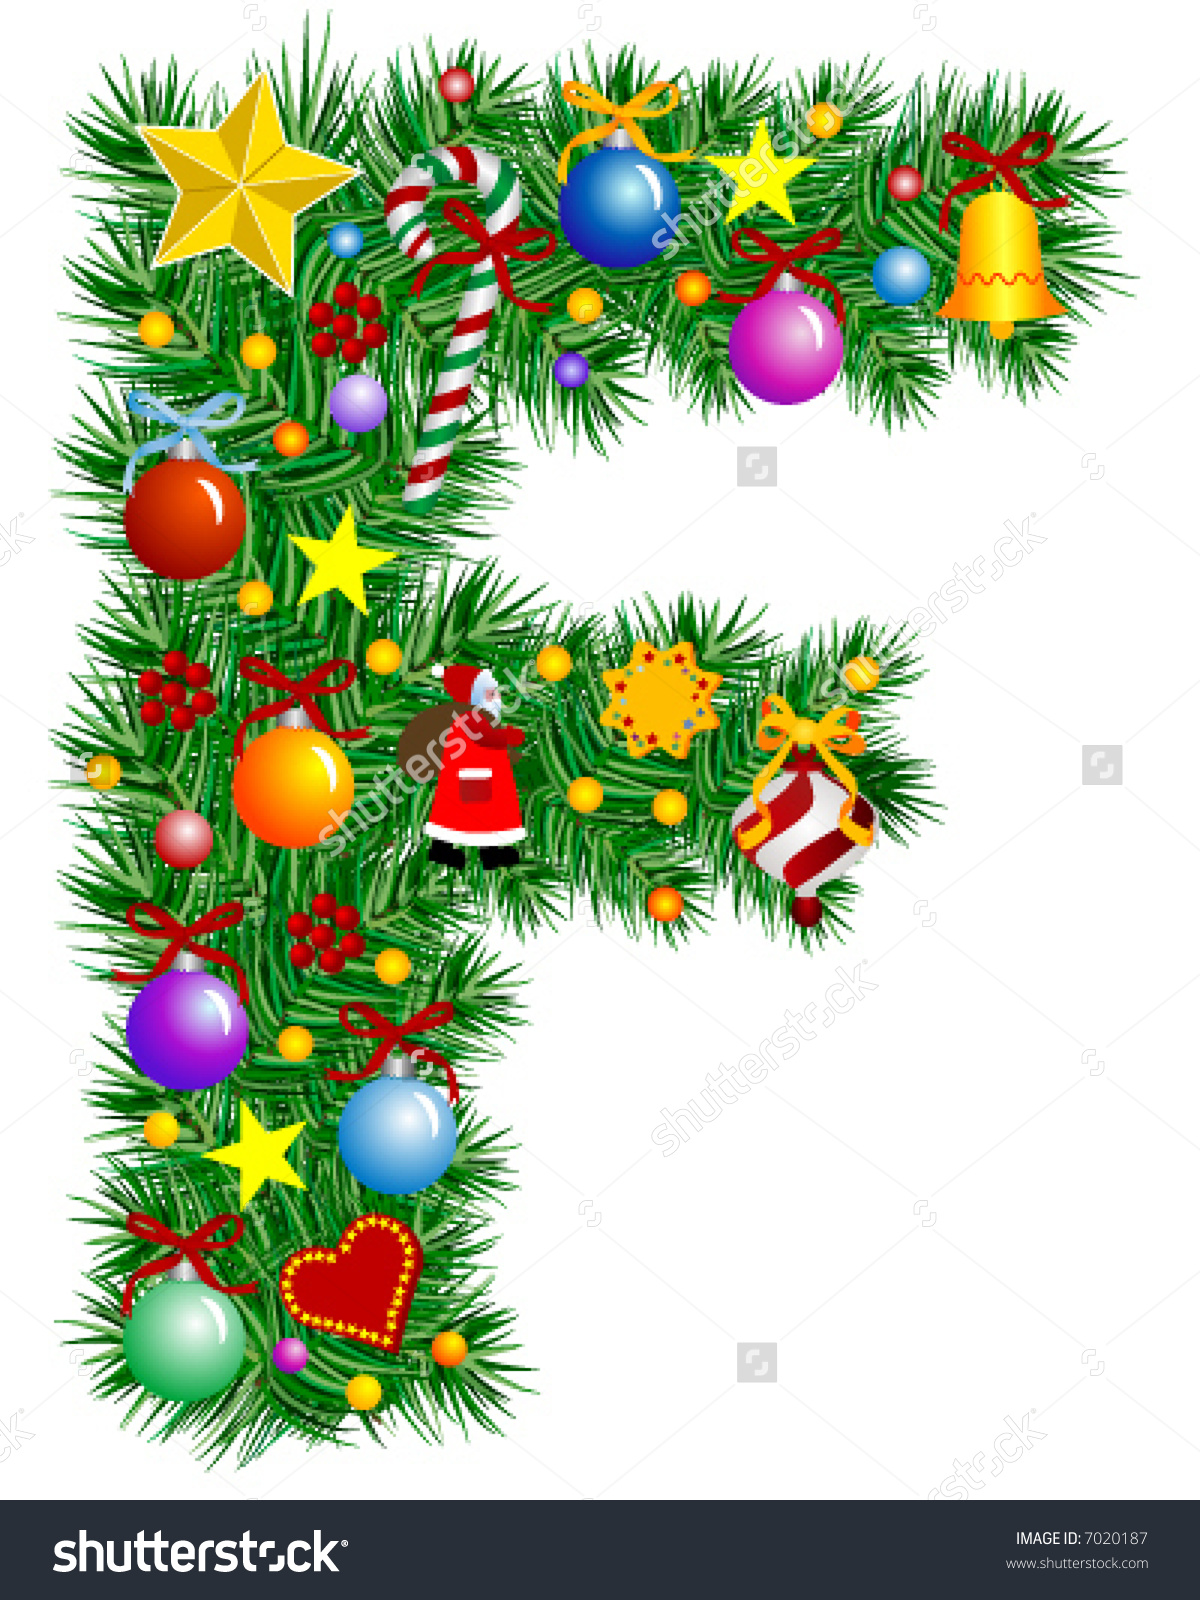 Christmas Tree Ornaments Clipart